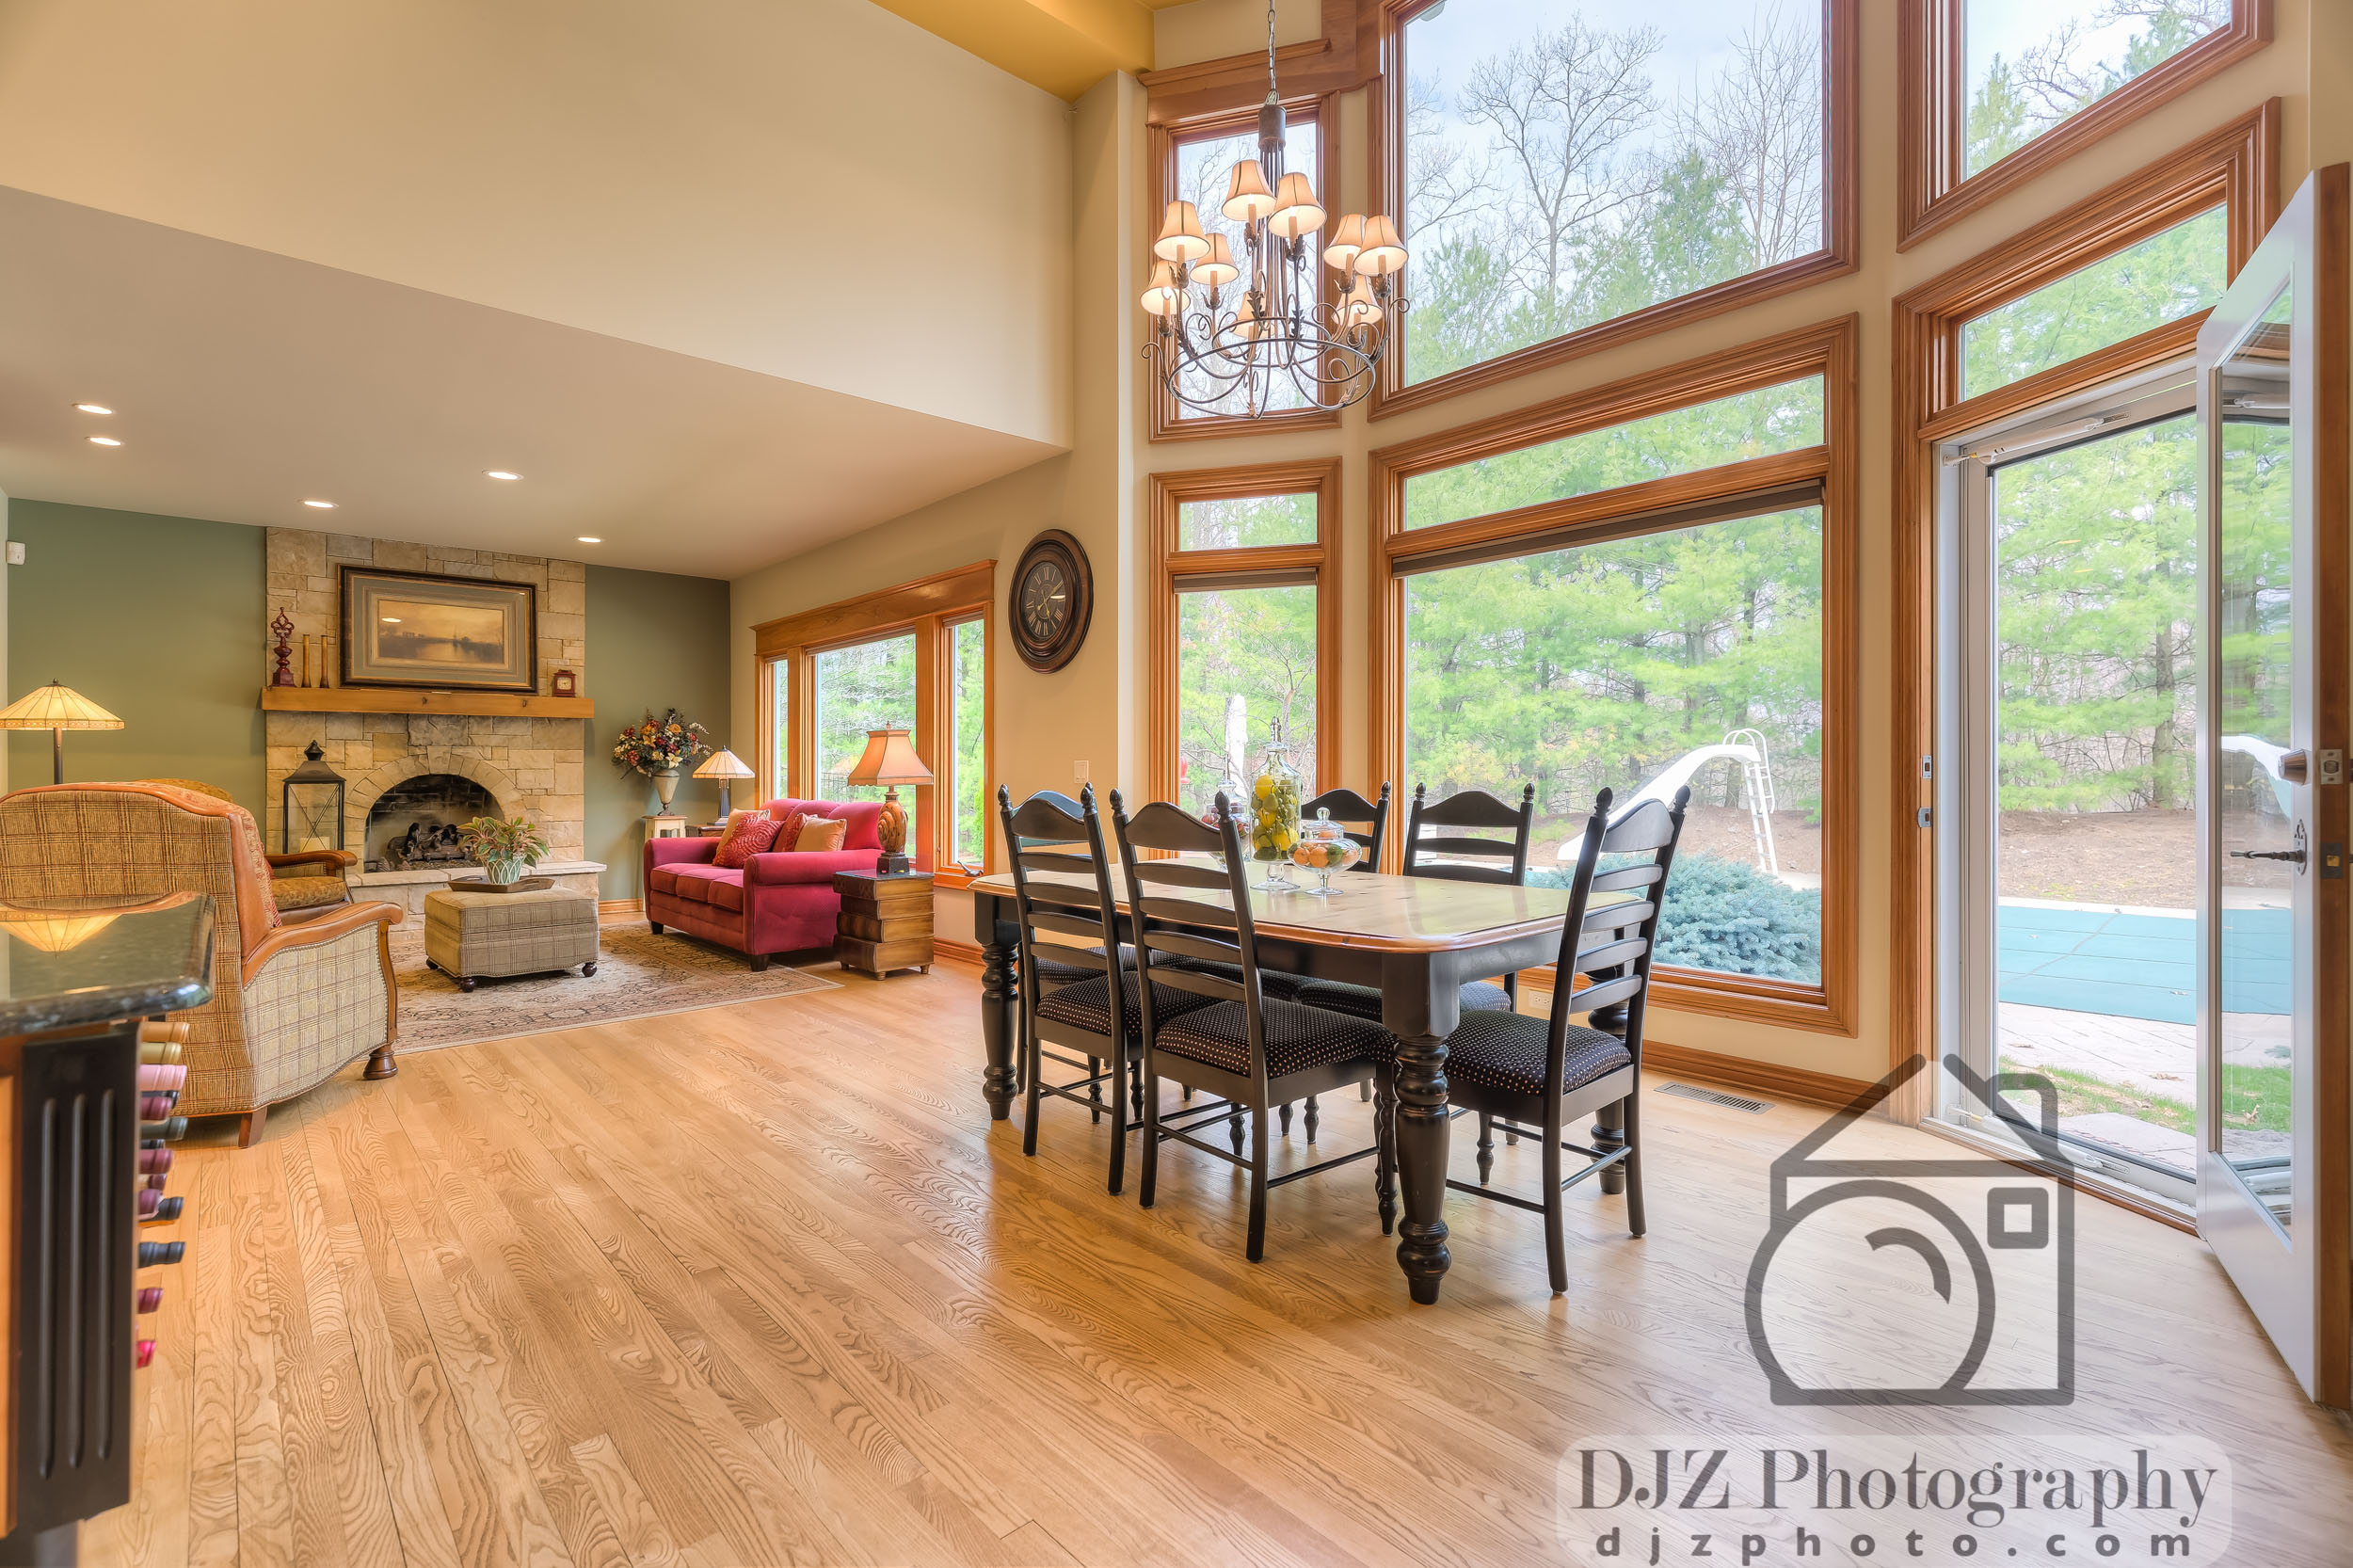 Dinette 1 - Real Estate Photography